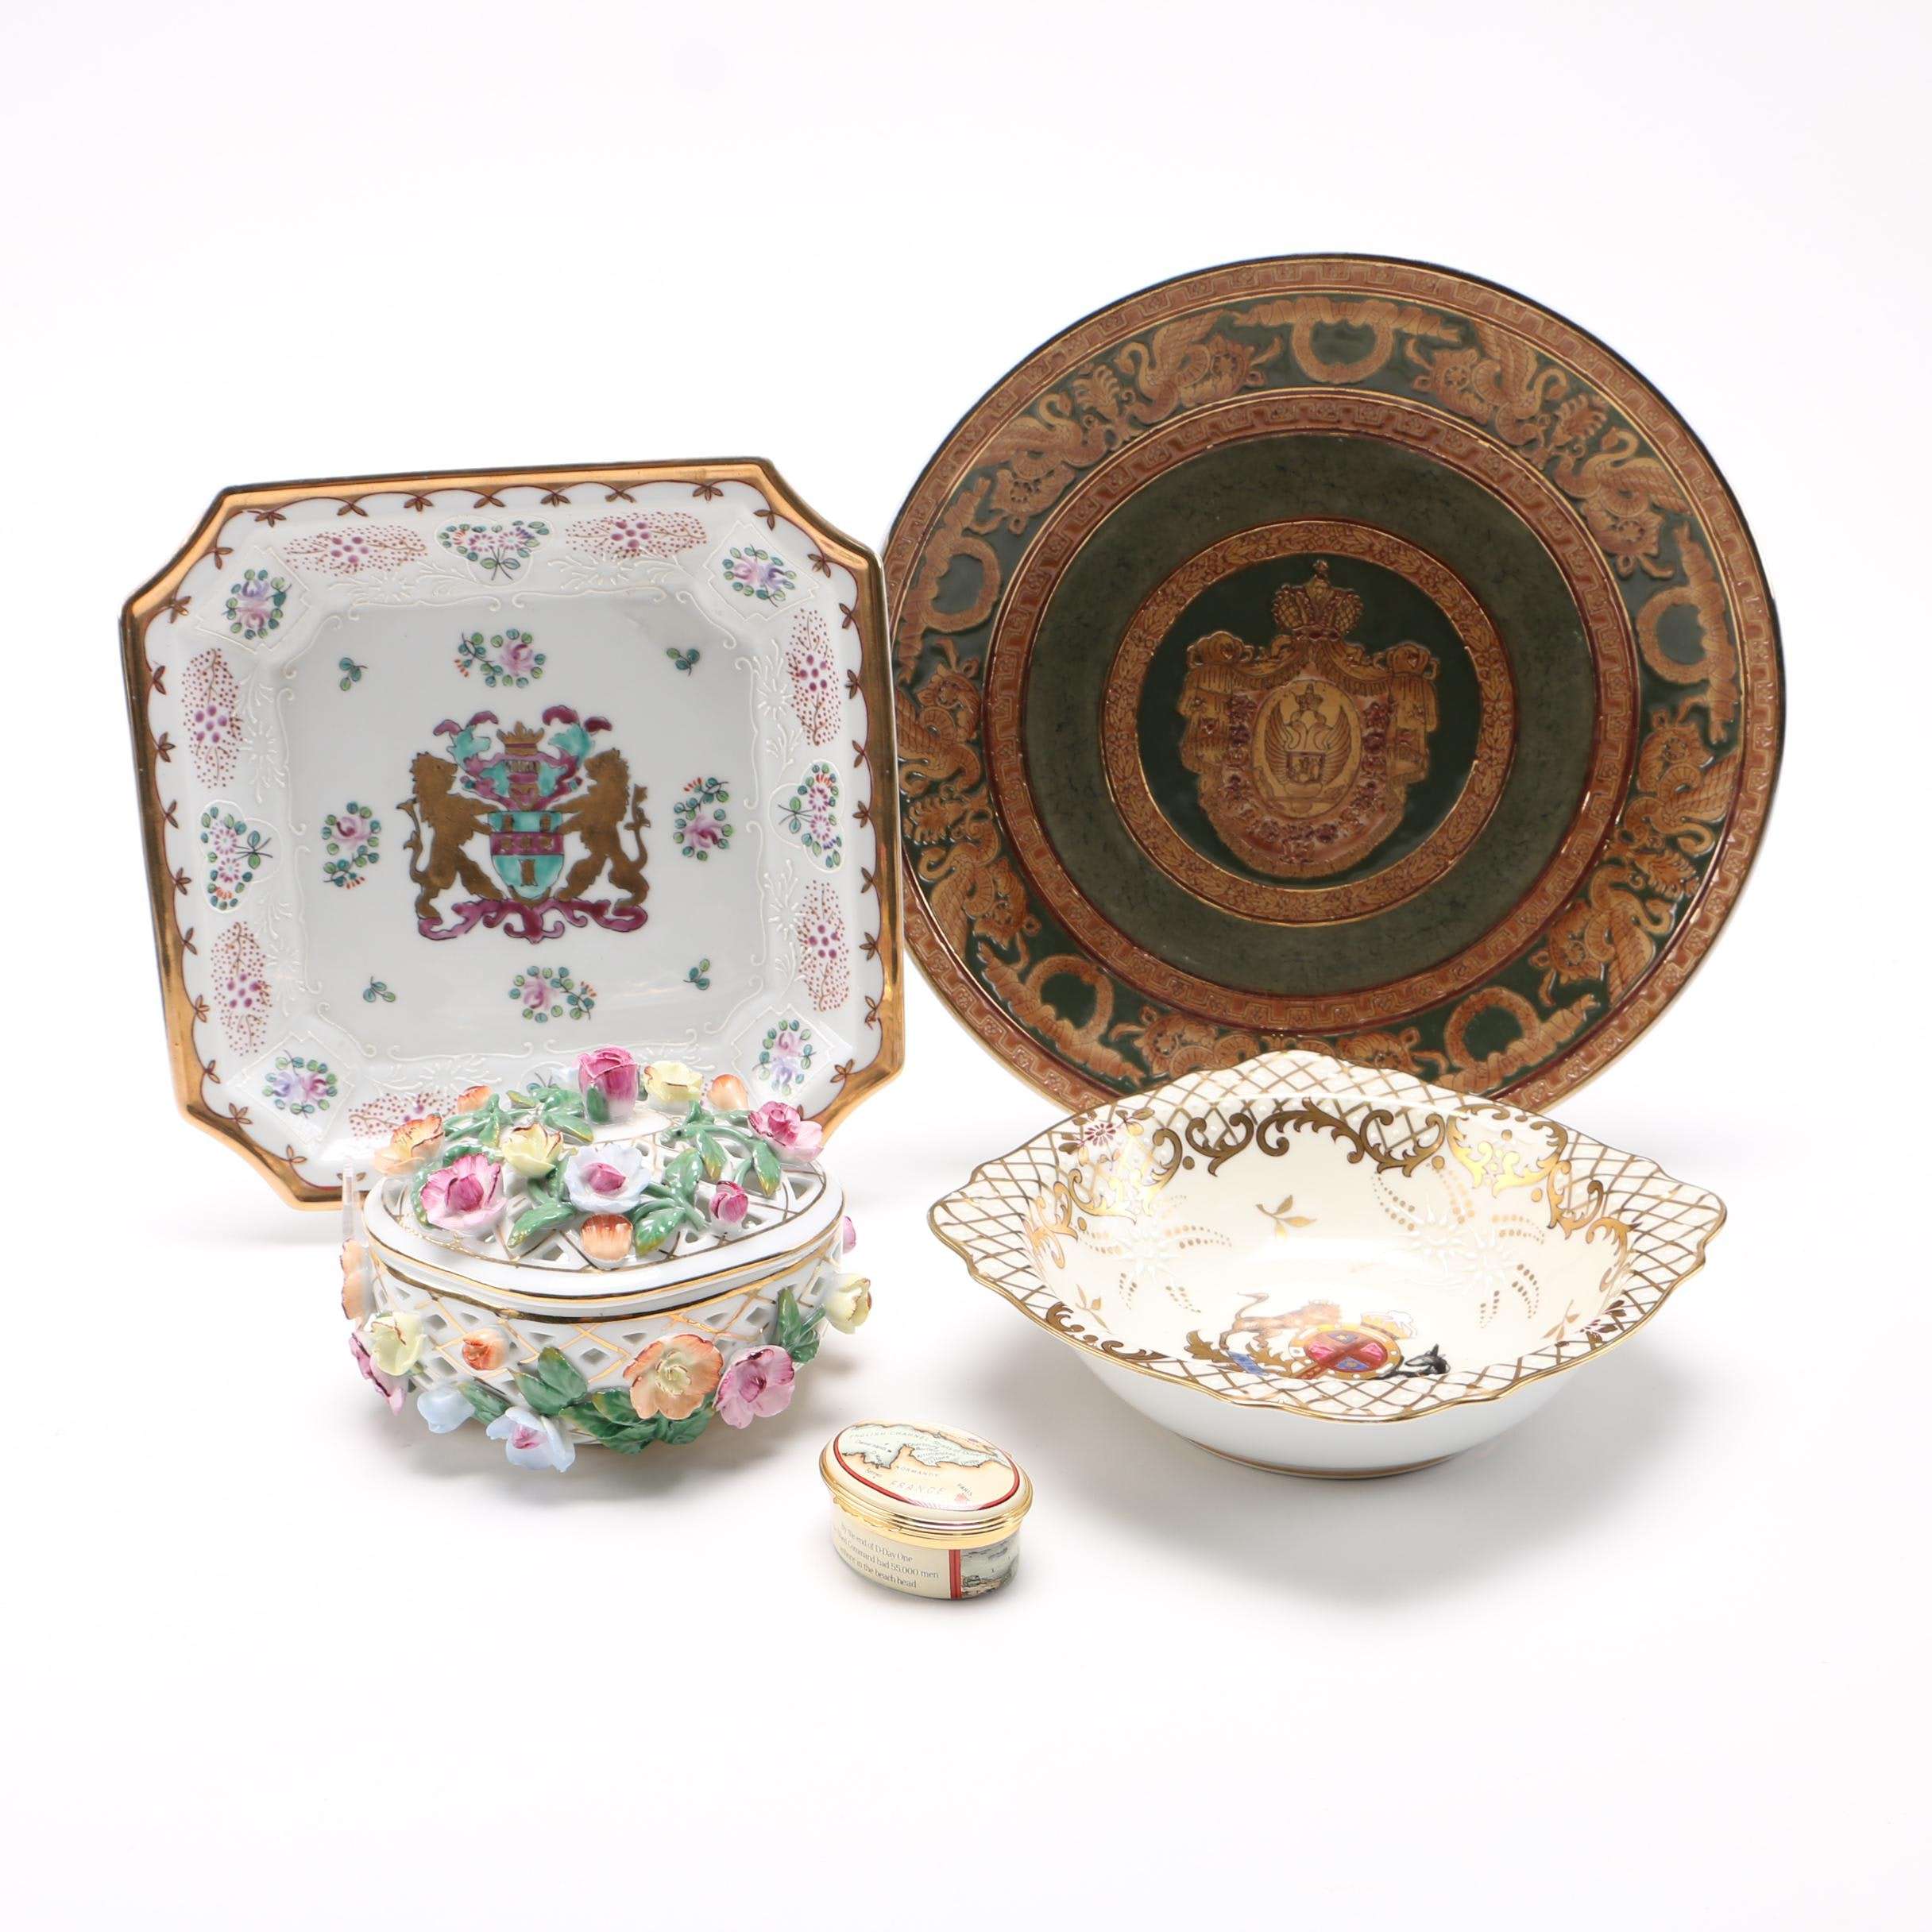 Decorative Plates and Trinket Boxes